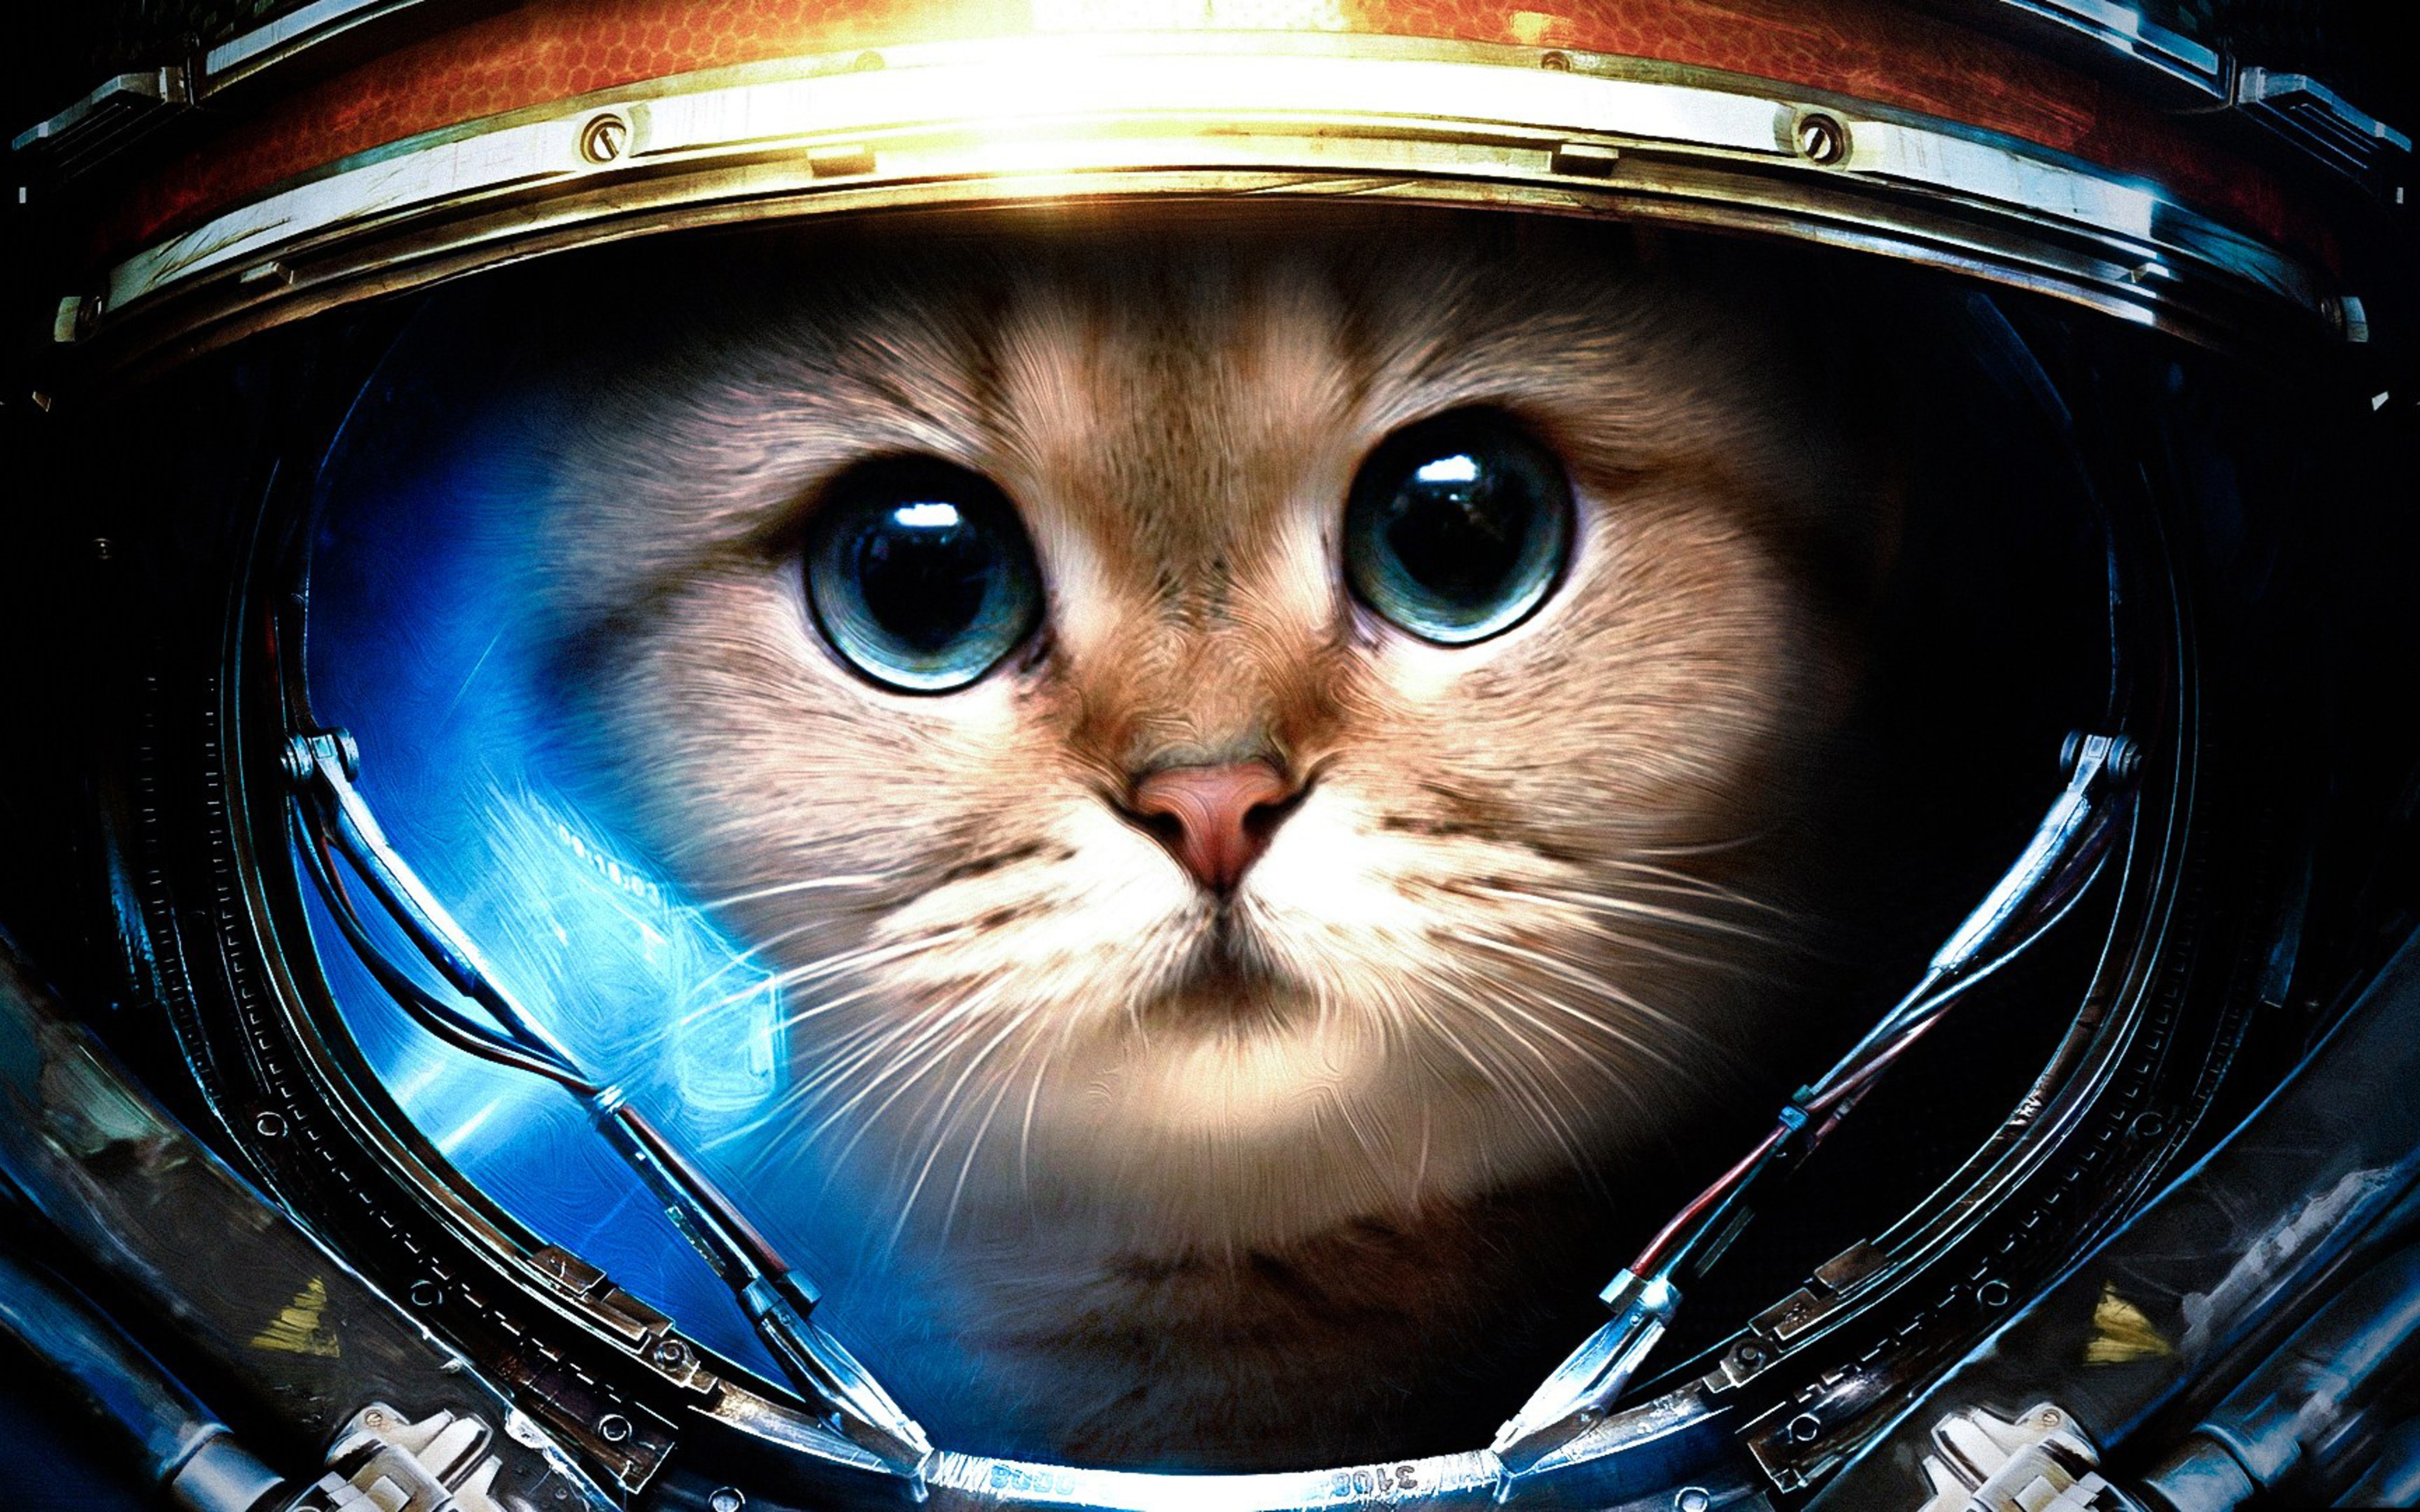 wallpaper download 5120x3200 cat from space. animal wallpapers. hd